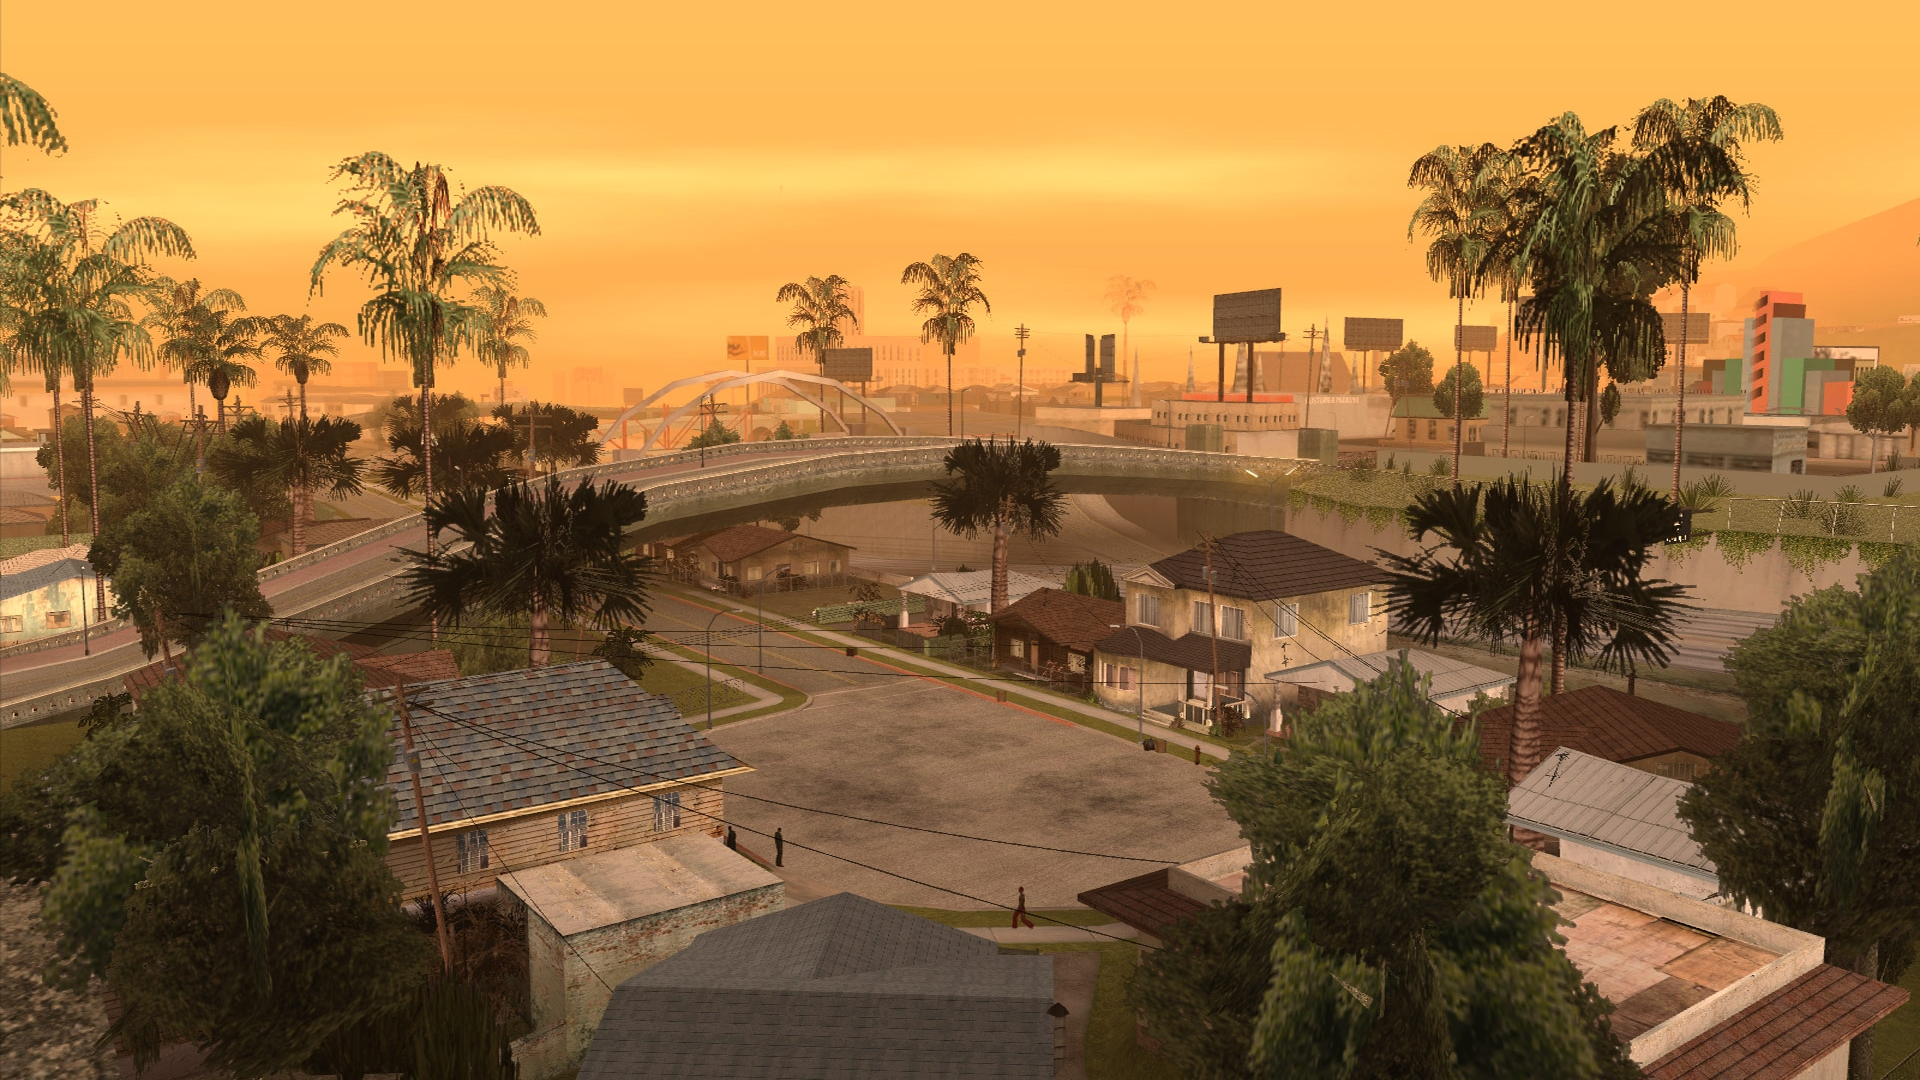 A sunset view of Los Santos